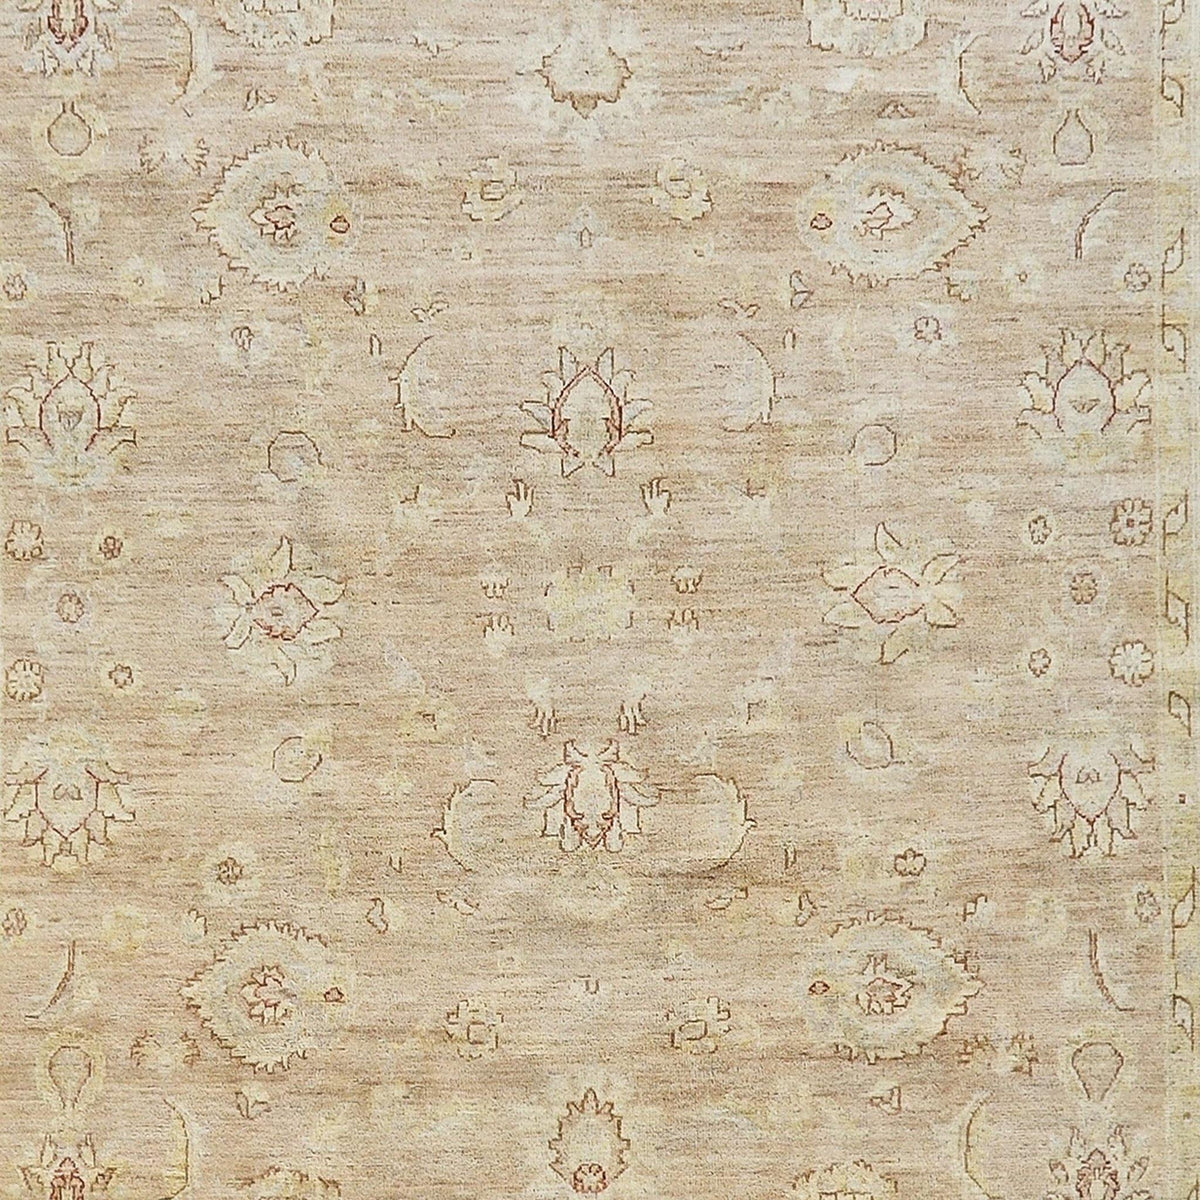 Contemporary Hand-knotted Vintage  Wool Rug 241cm x 286cm Persian-Rug | House-of-Haghi | NewMarket | Auckland | NZ | Handmade Persian Rugs | Hand Knotted Persian Rugs